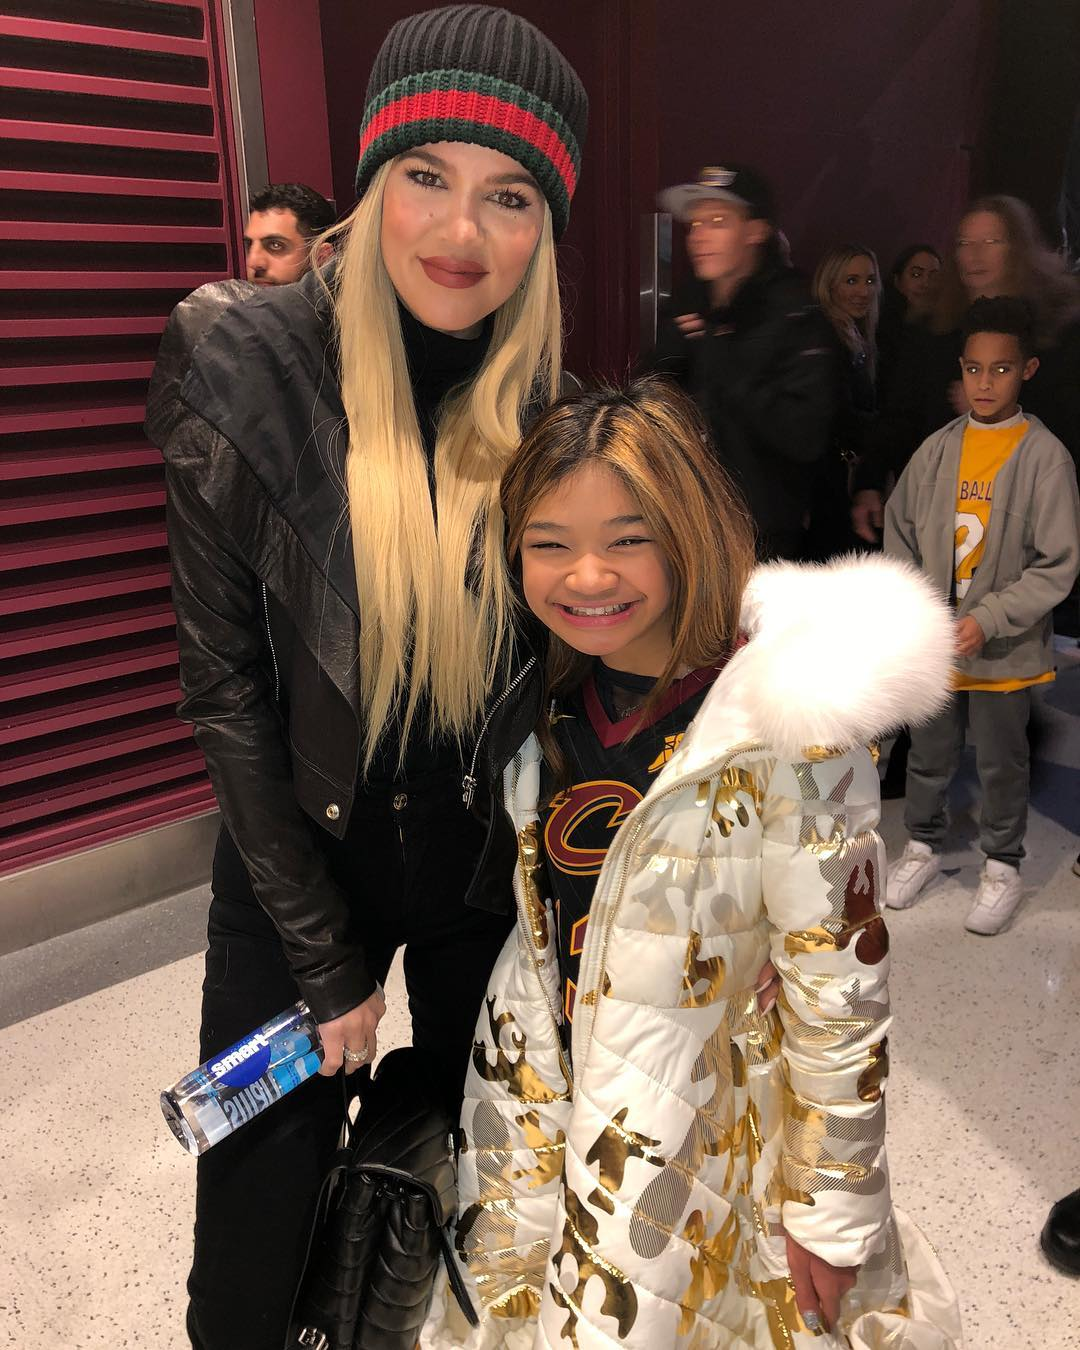 PHOTOS | November 21, 2018 – Khloe Kardashian at Cavs game in Cleveland